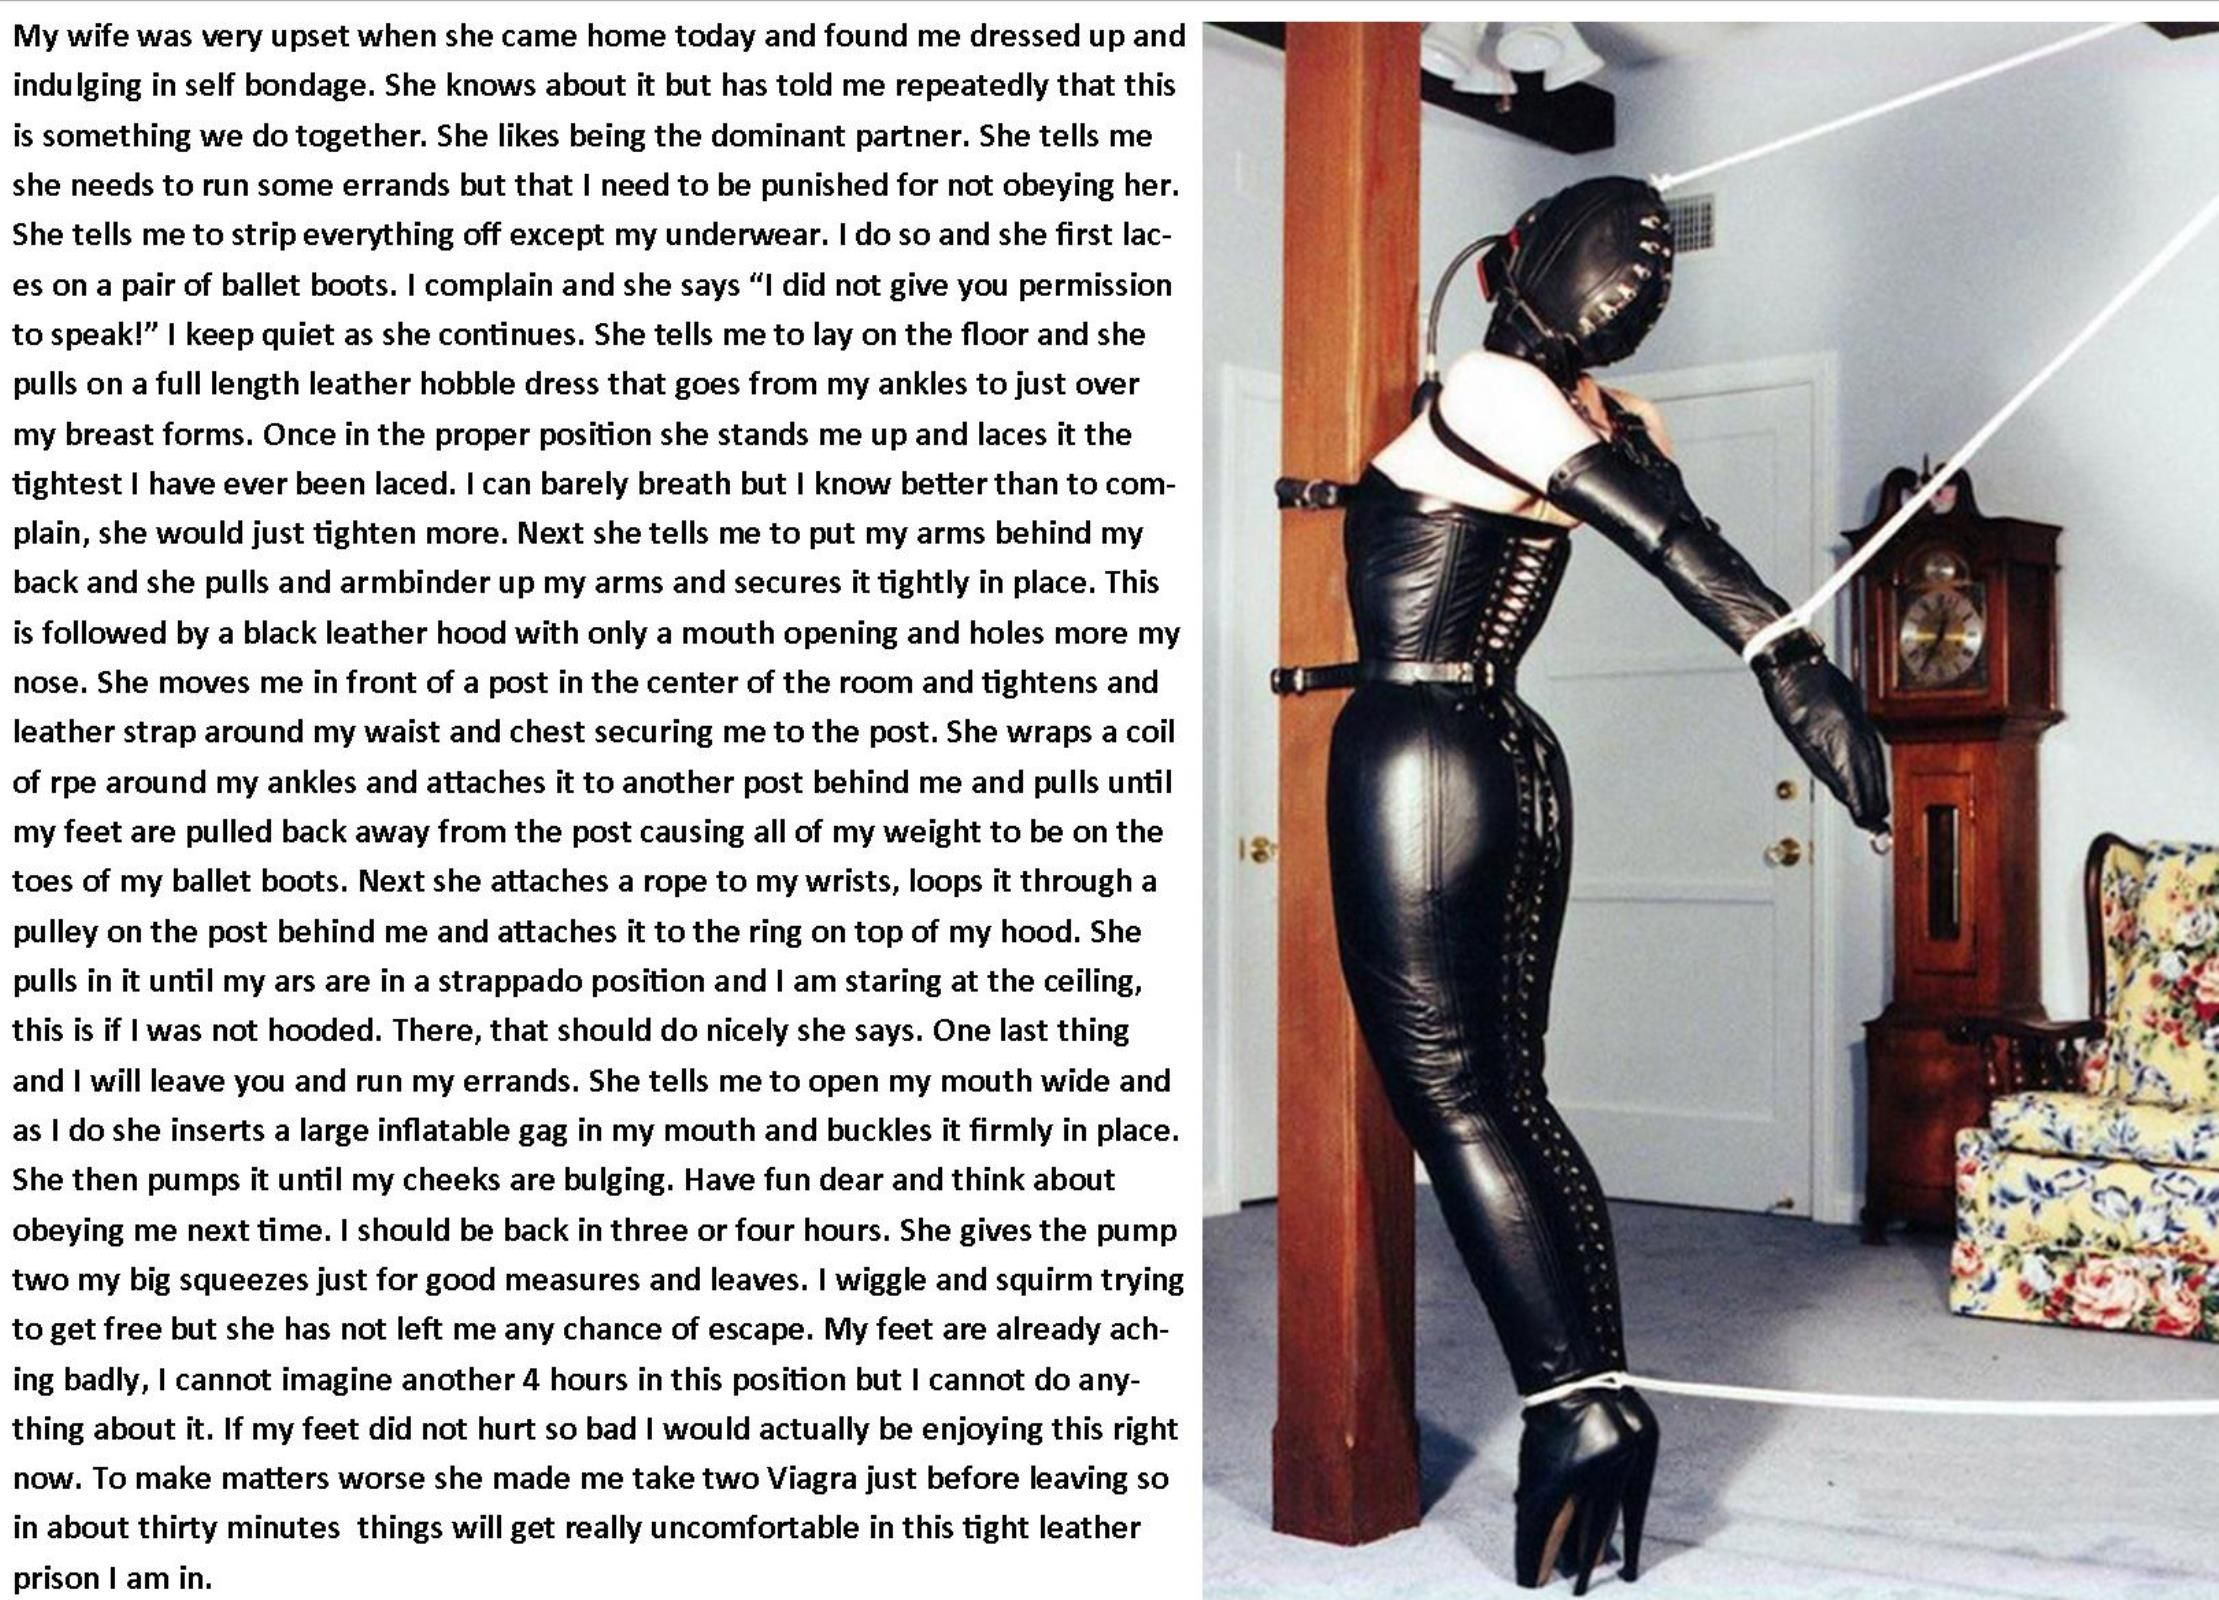 Free bondage fiction stories, nice bobs mature pics